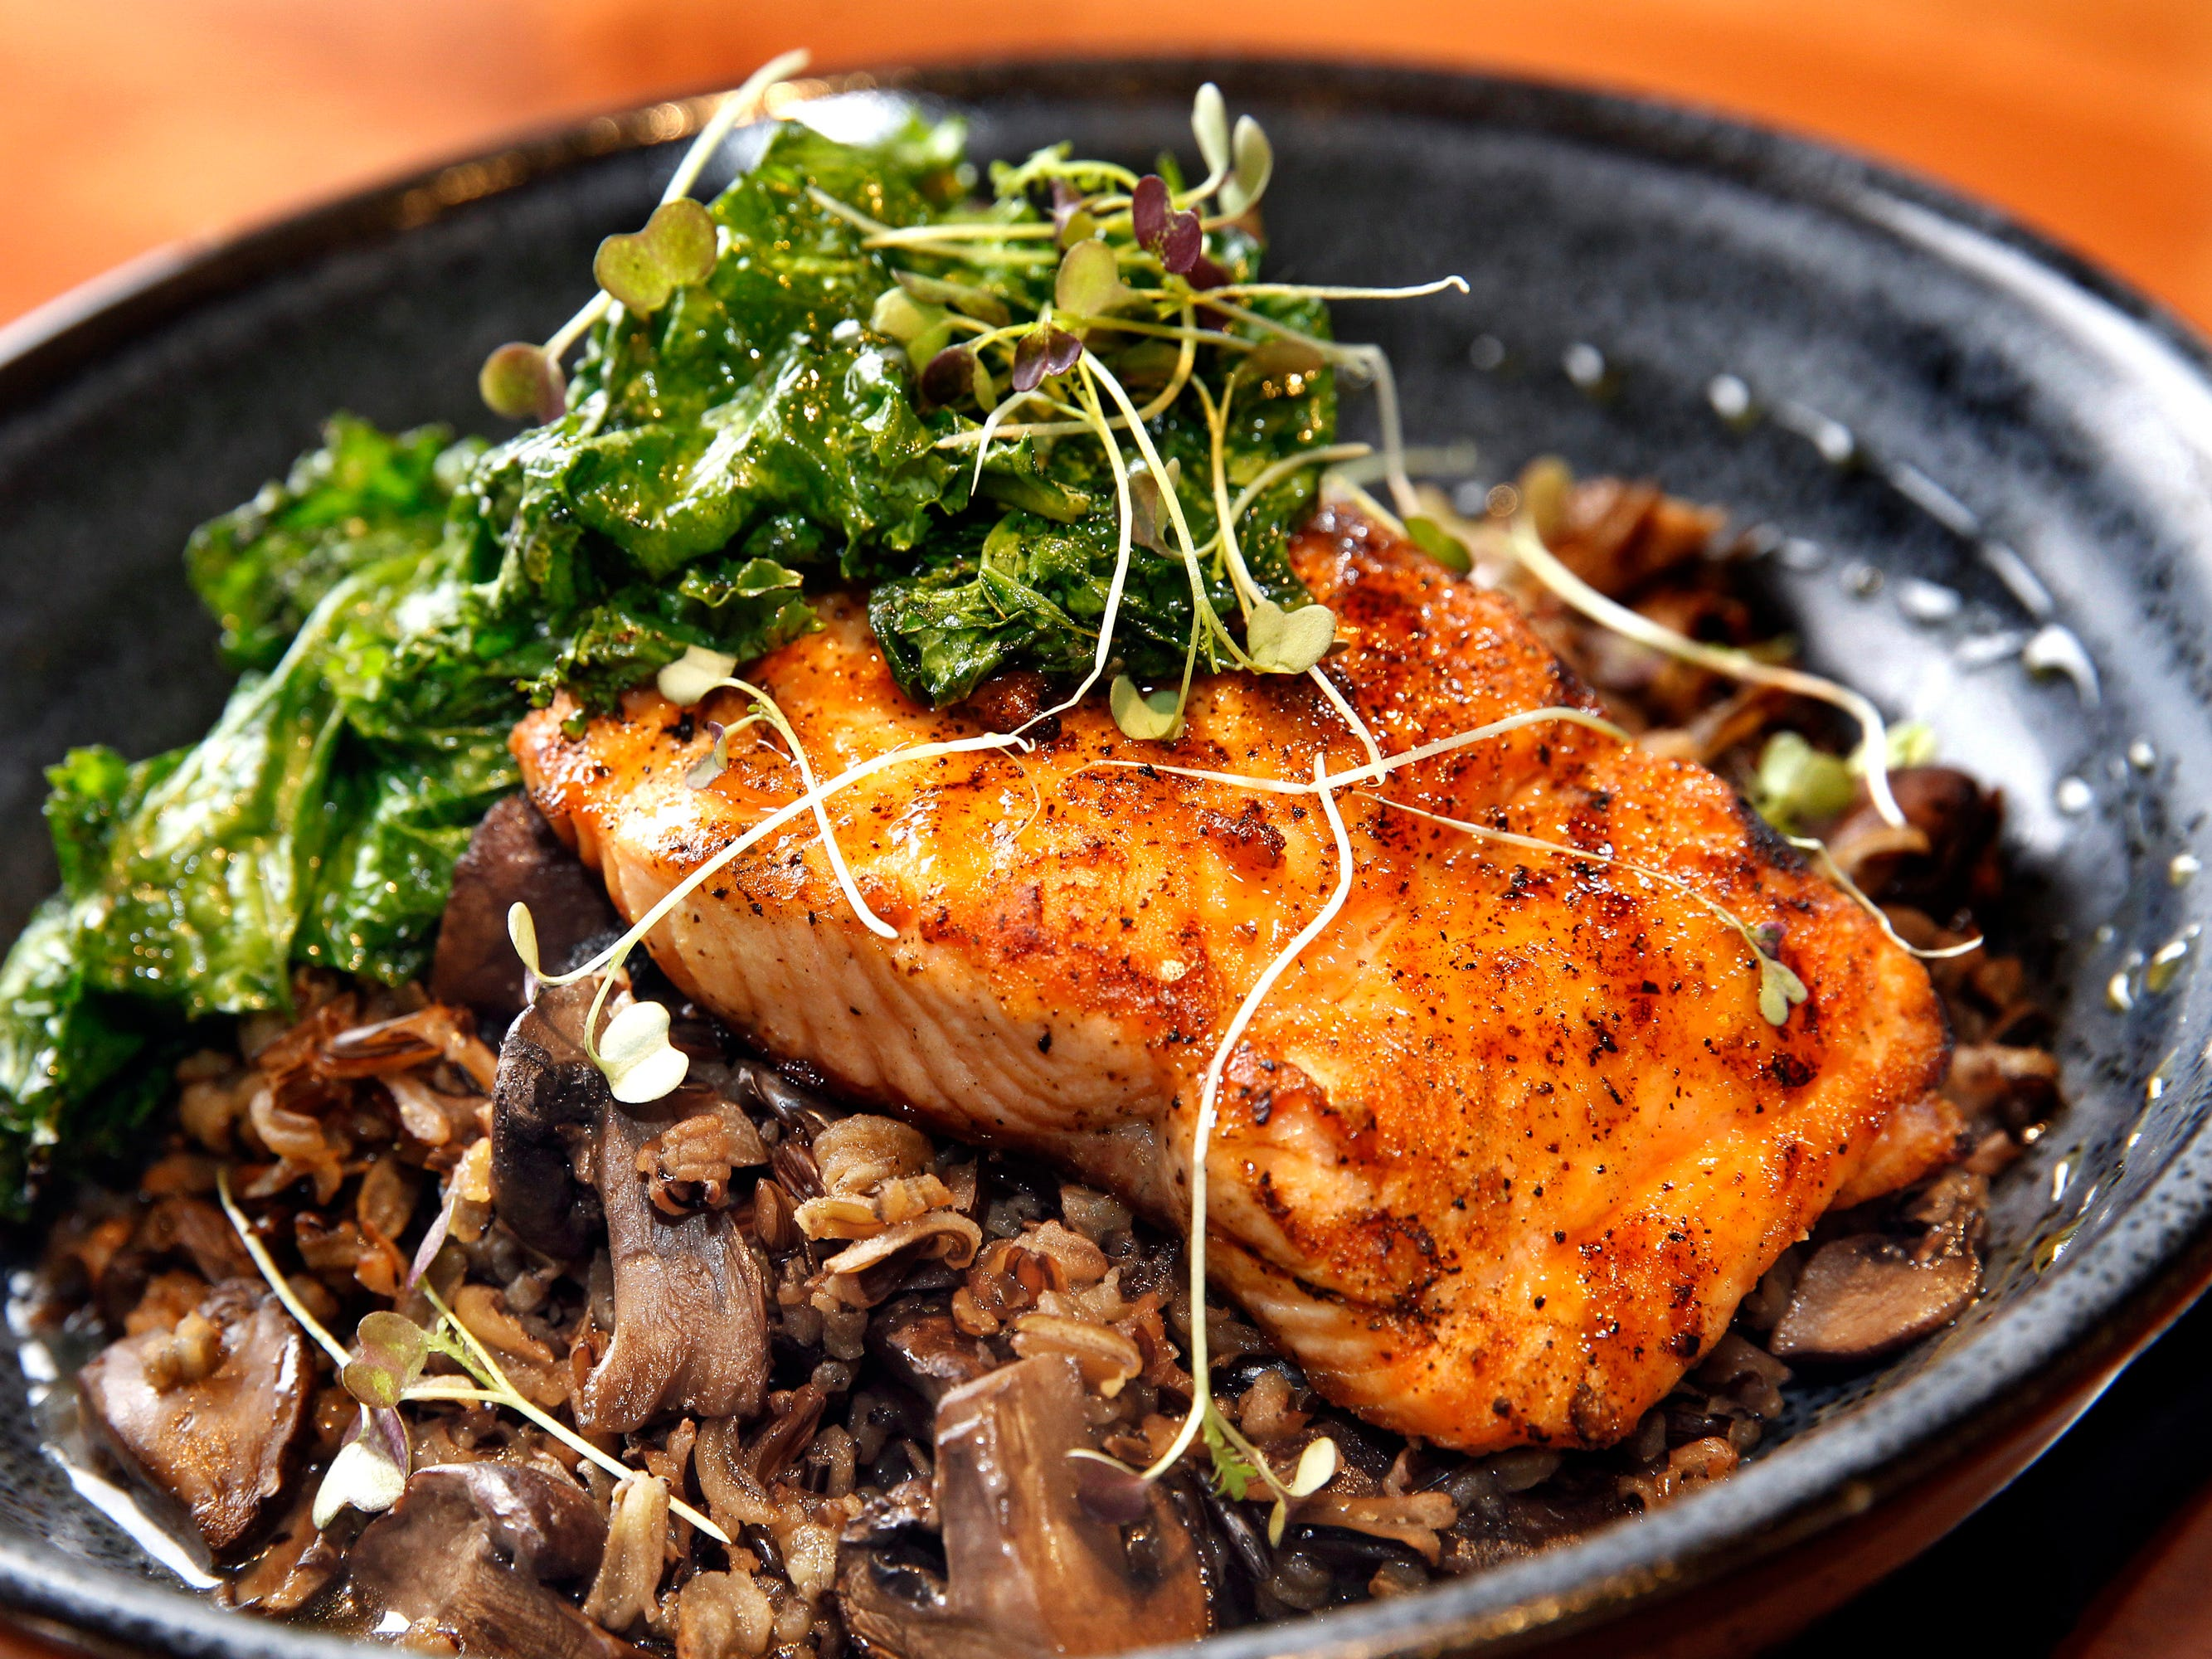 The Mapled-Glazed Atlantic Salmon served with roasted mushroom wild rice, wilted mustard greens and maple glaze from the Twisted Fire restaurant at 515 E. Wisconsin Ave., Oconomowac, Wi.